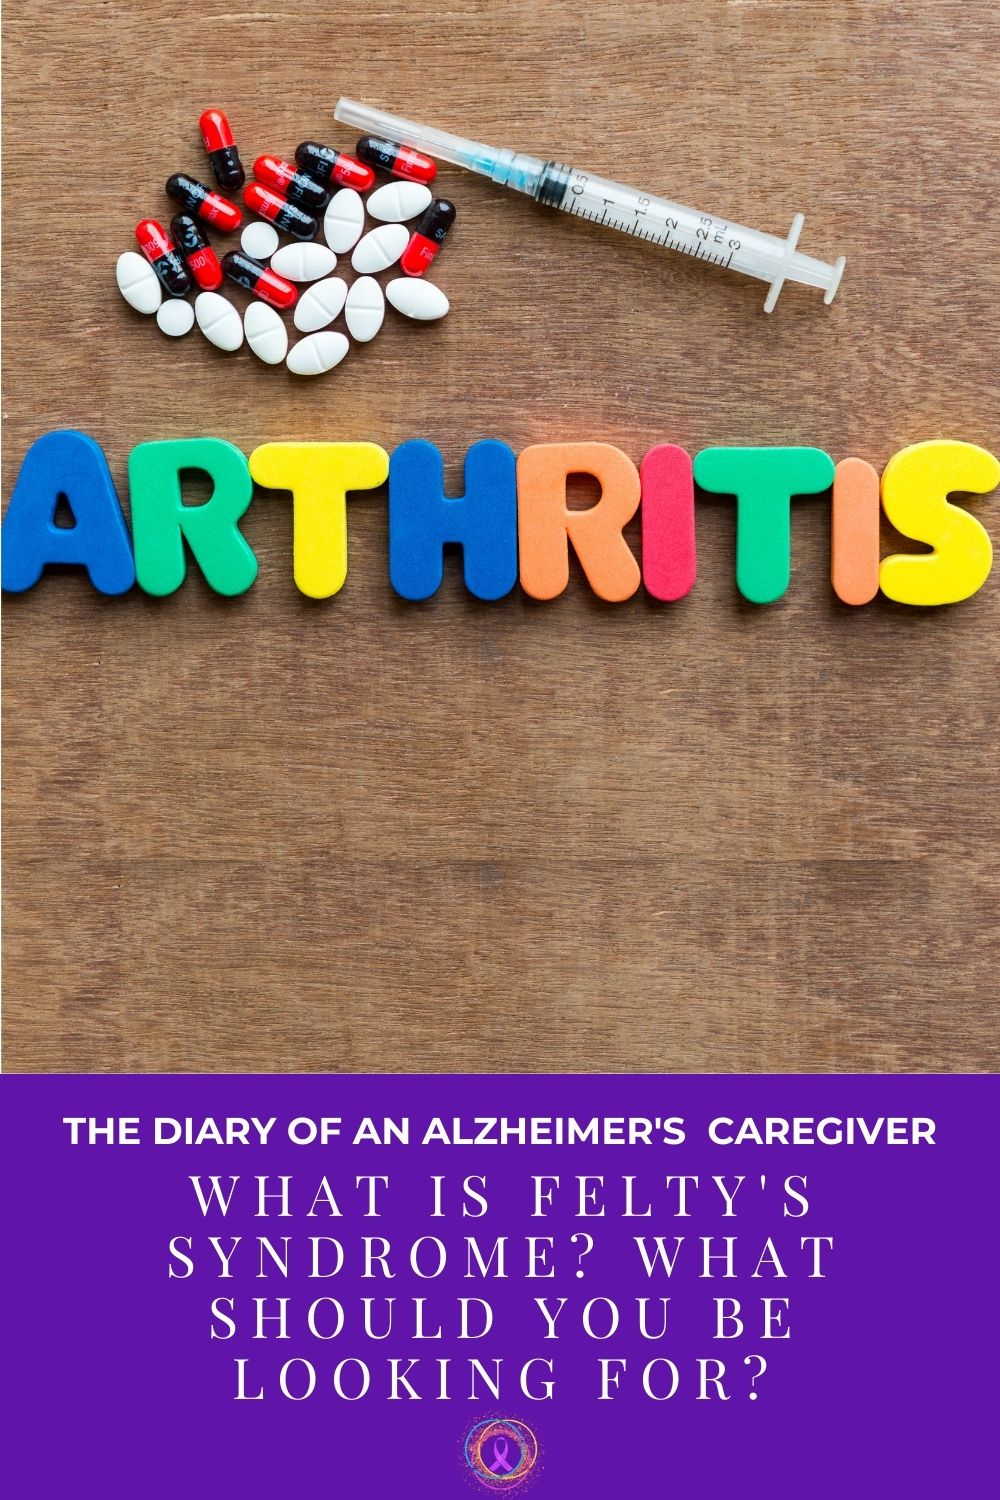 the word arthritis with a needle and medication